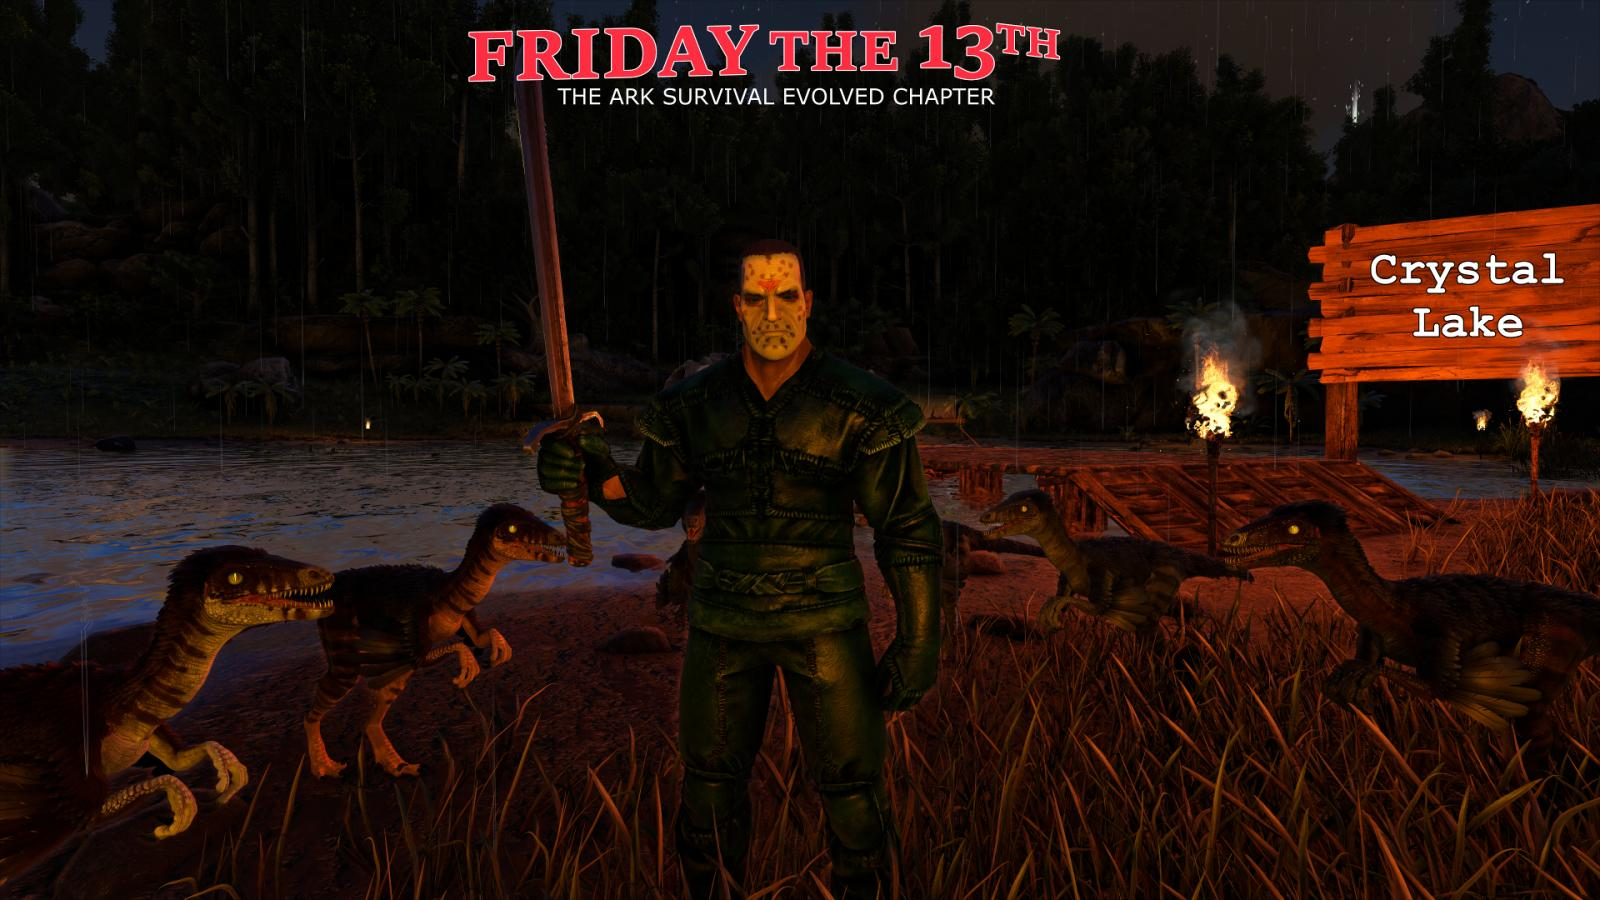 large.59848bc1e5a7e_WolfAngelus-FRIDAYTHE13TH-THEARKSURVIVALEVOLVEDCHAPTER-Freeform.jpg